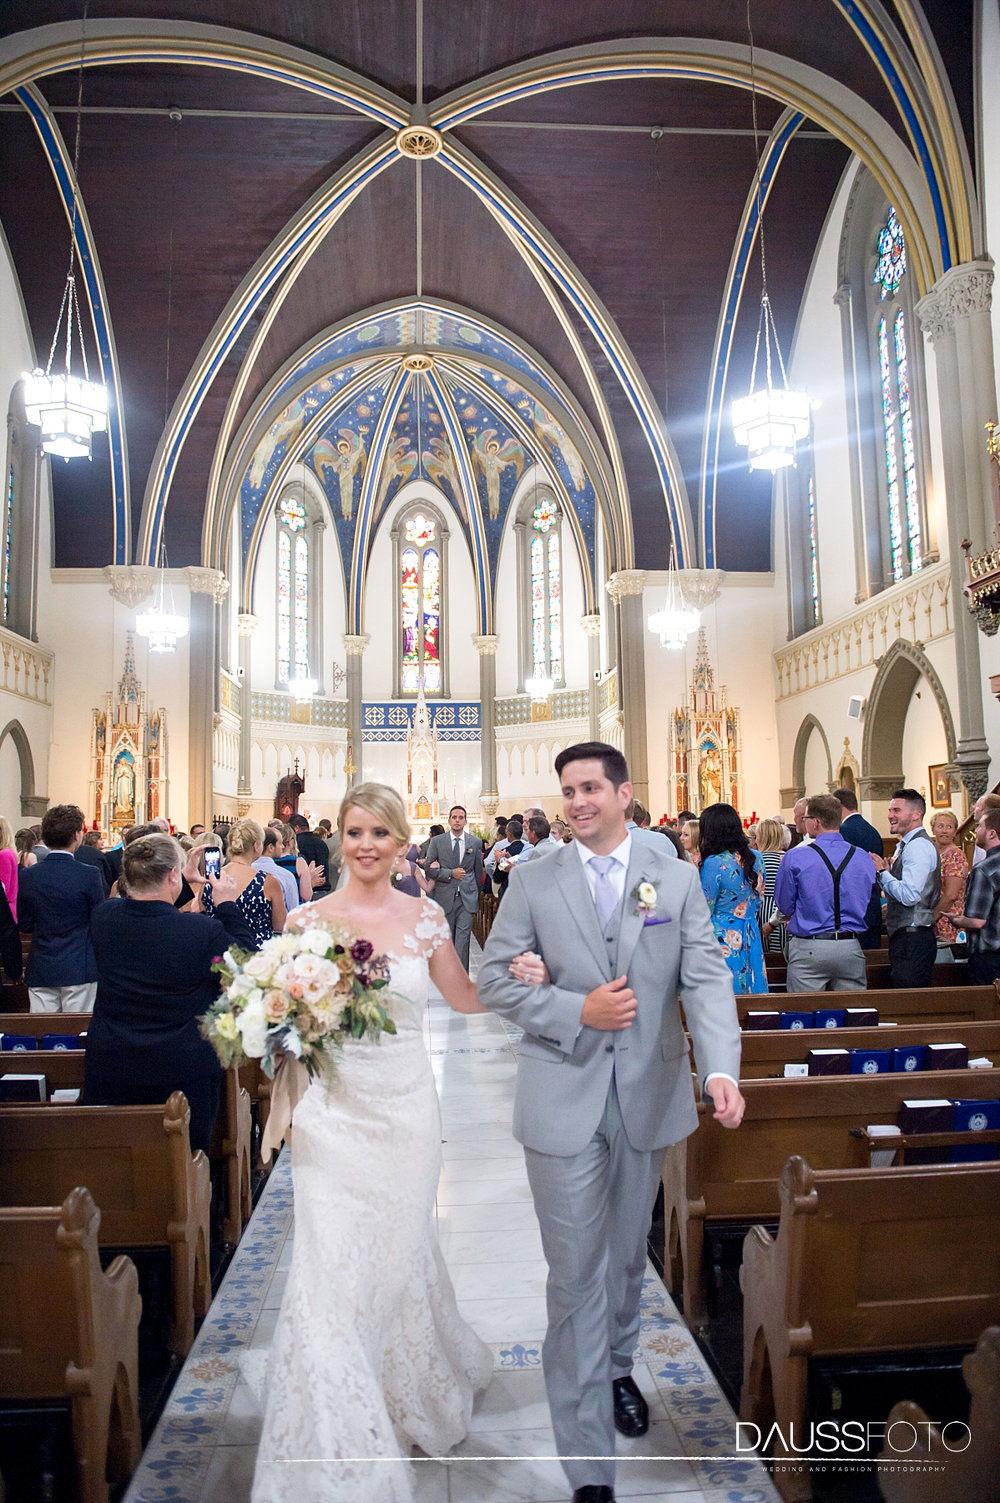 DaussFOTO_20160625_0298_Indiana Wedding Photographer_Crowne Plaza at Historic Union Station.jpg